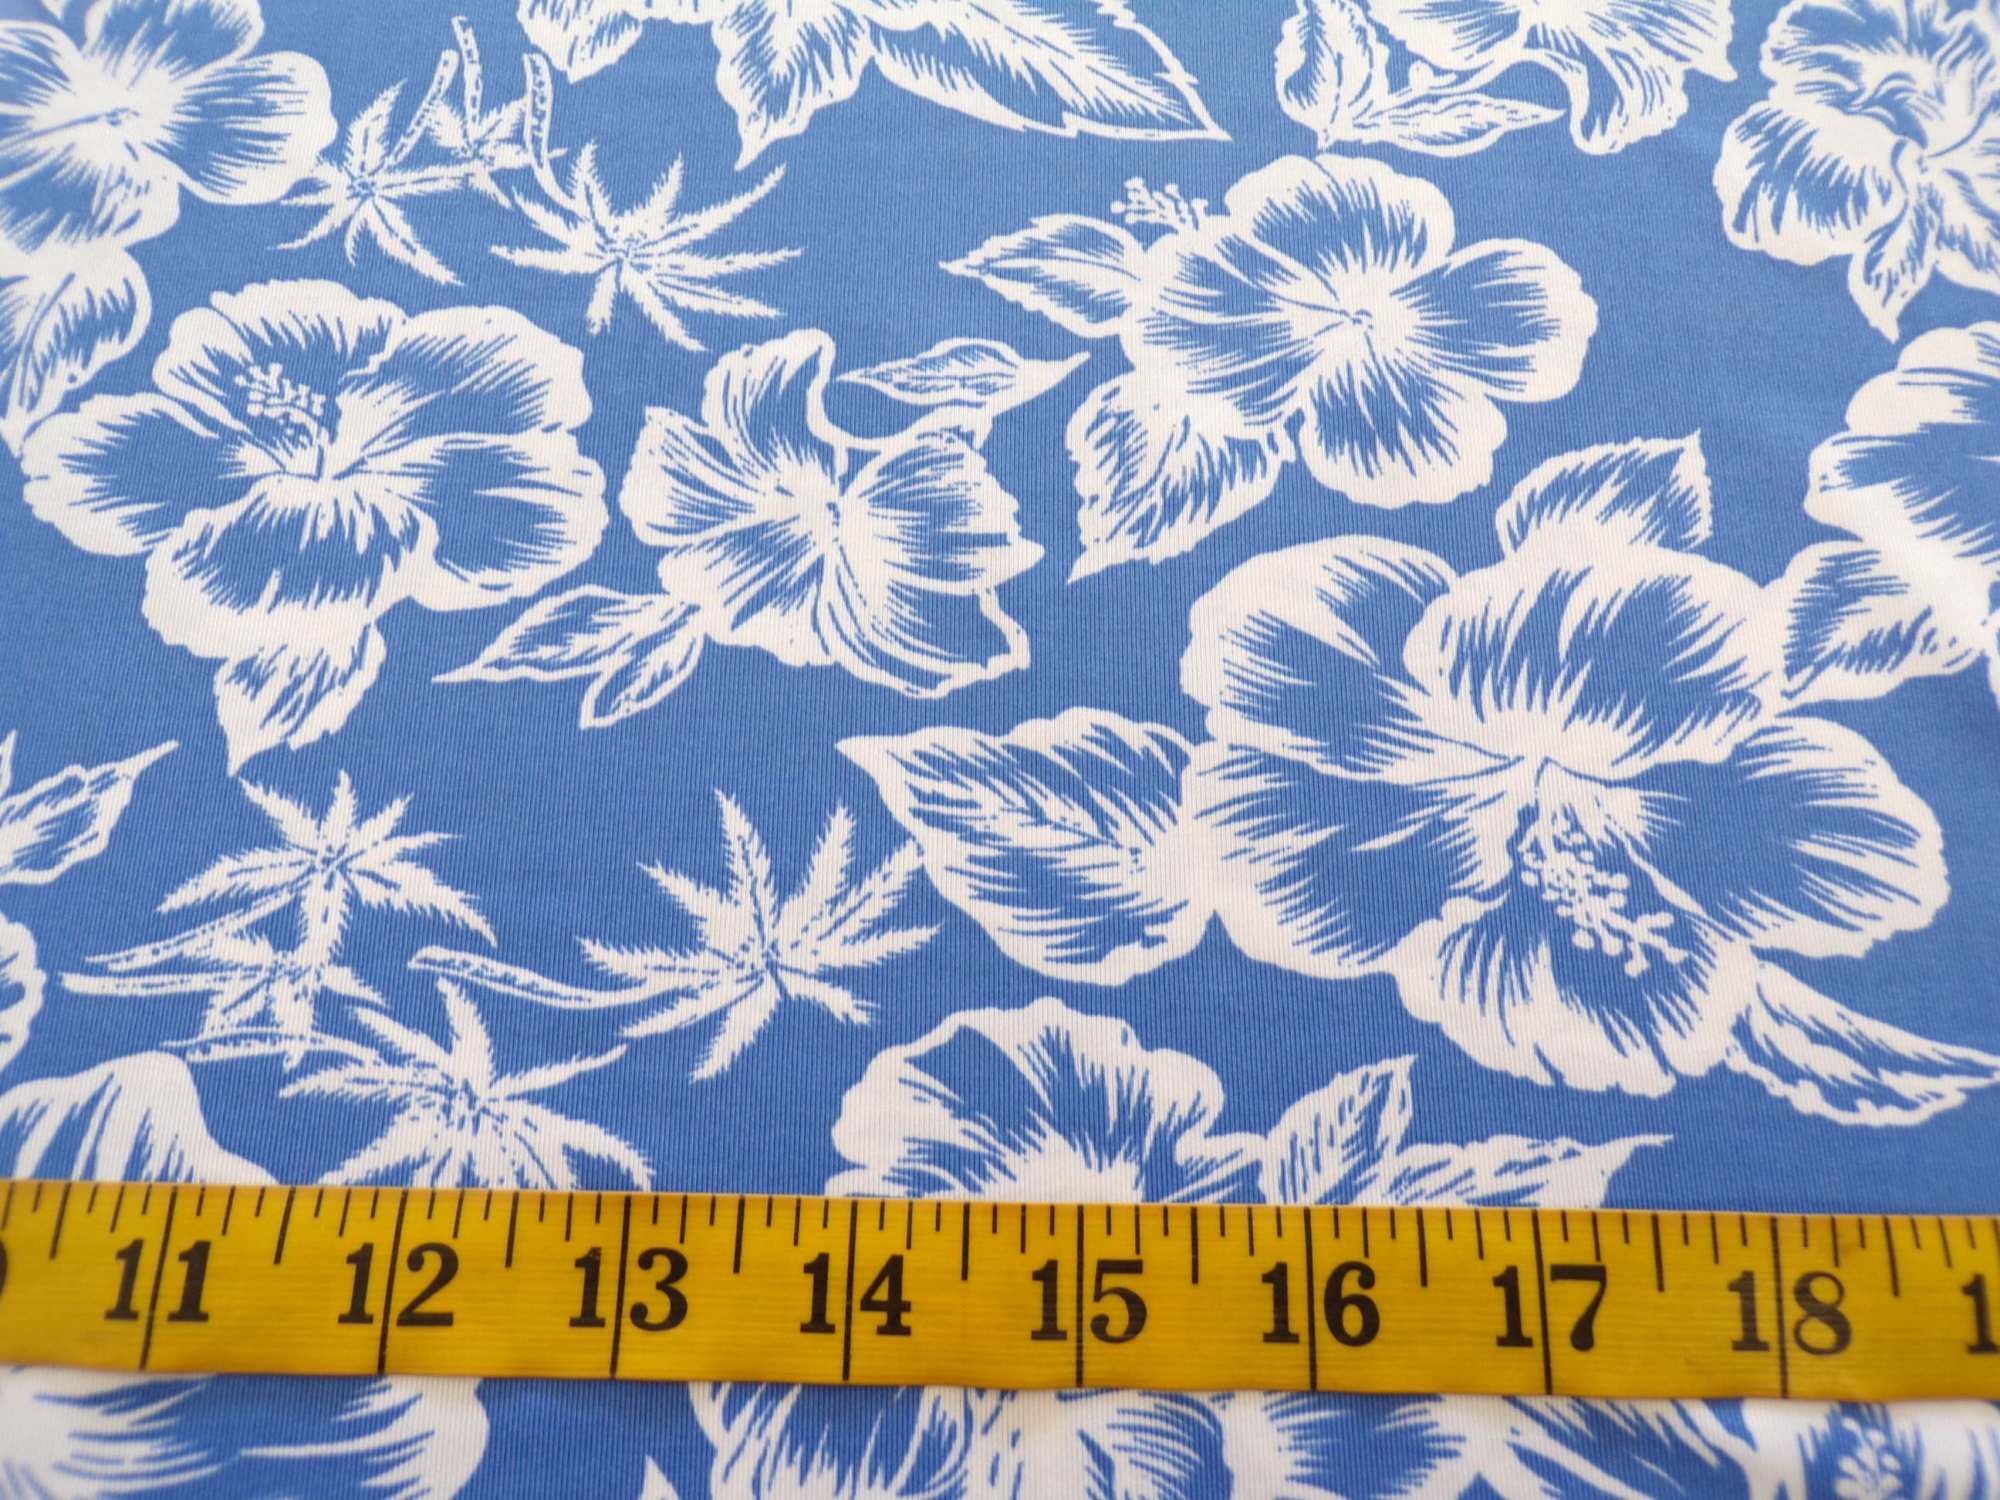 Swimwear - Blue and White Floral